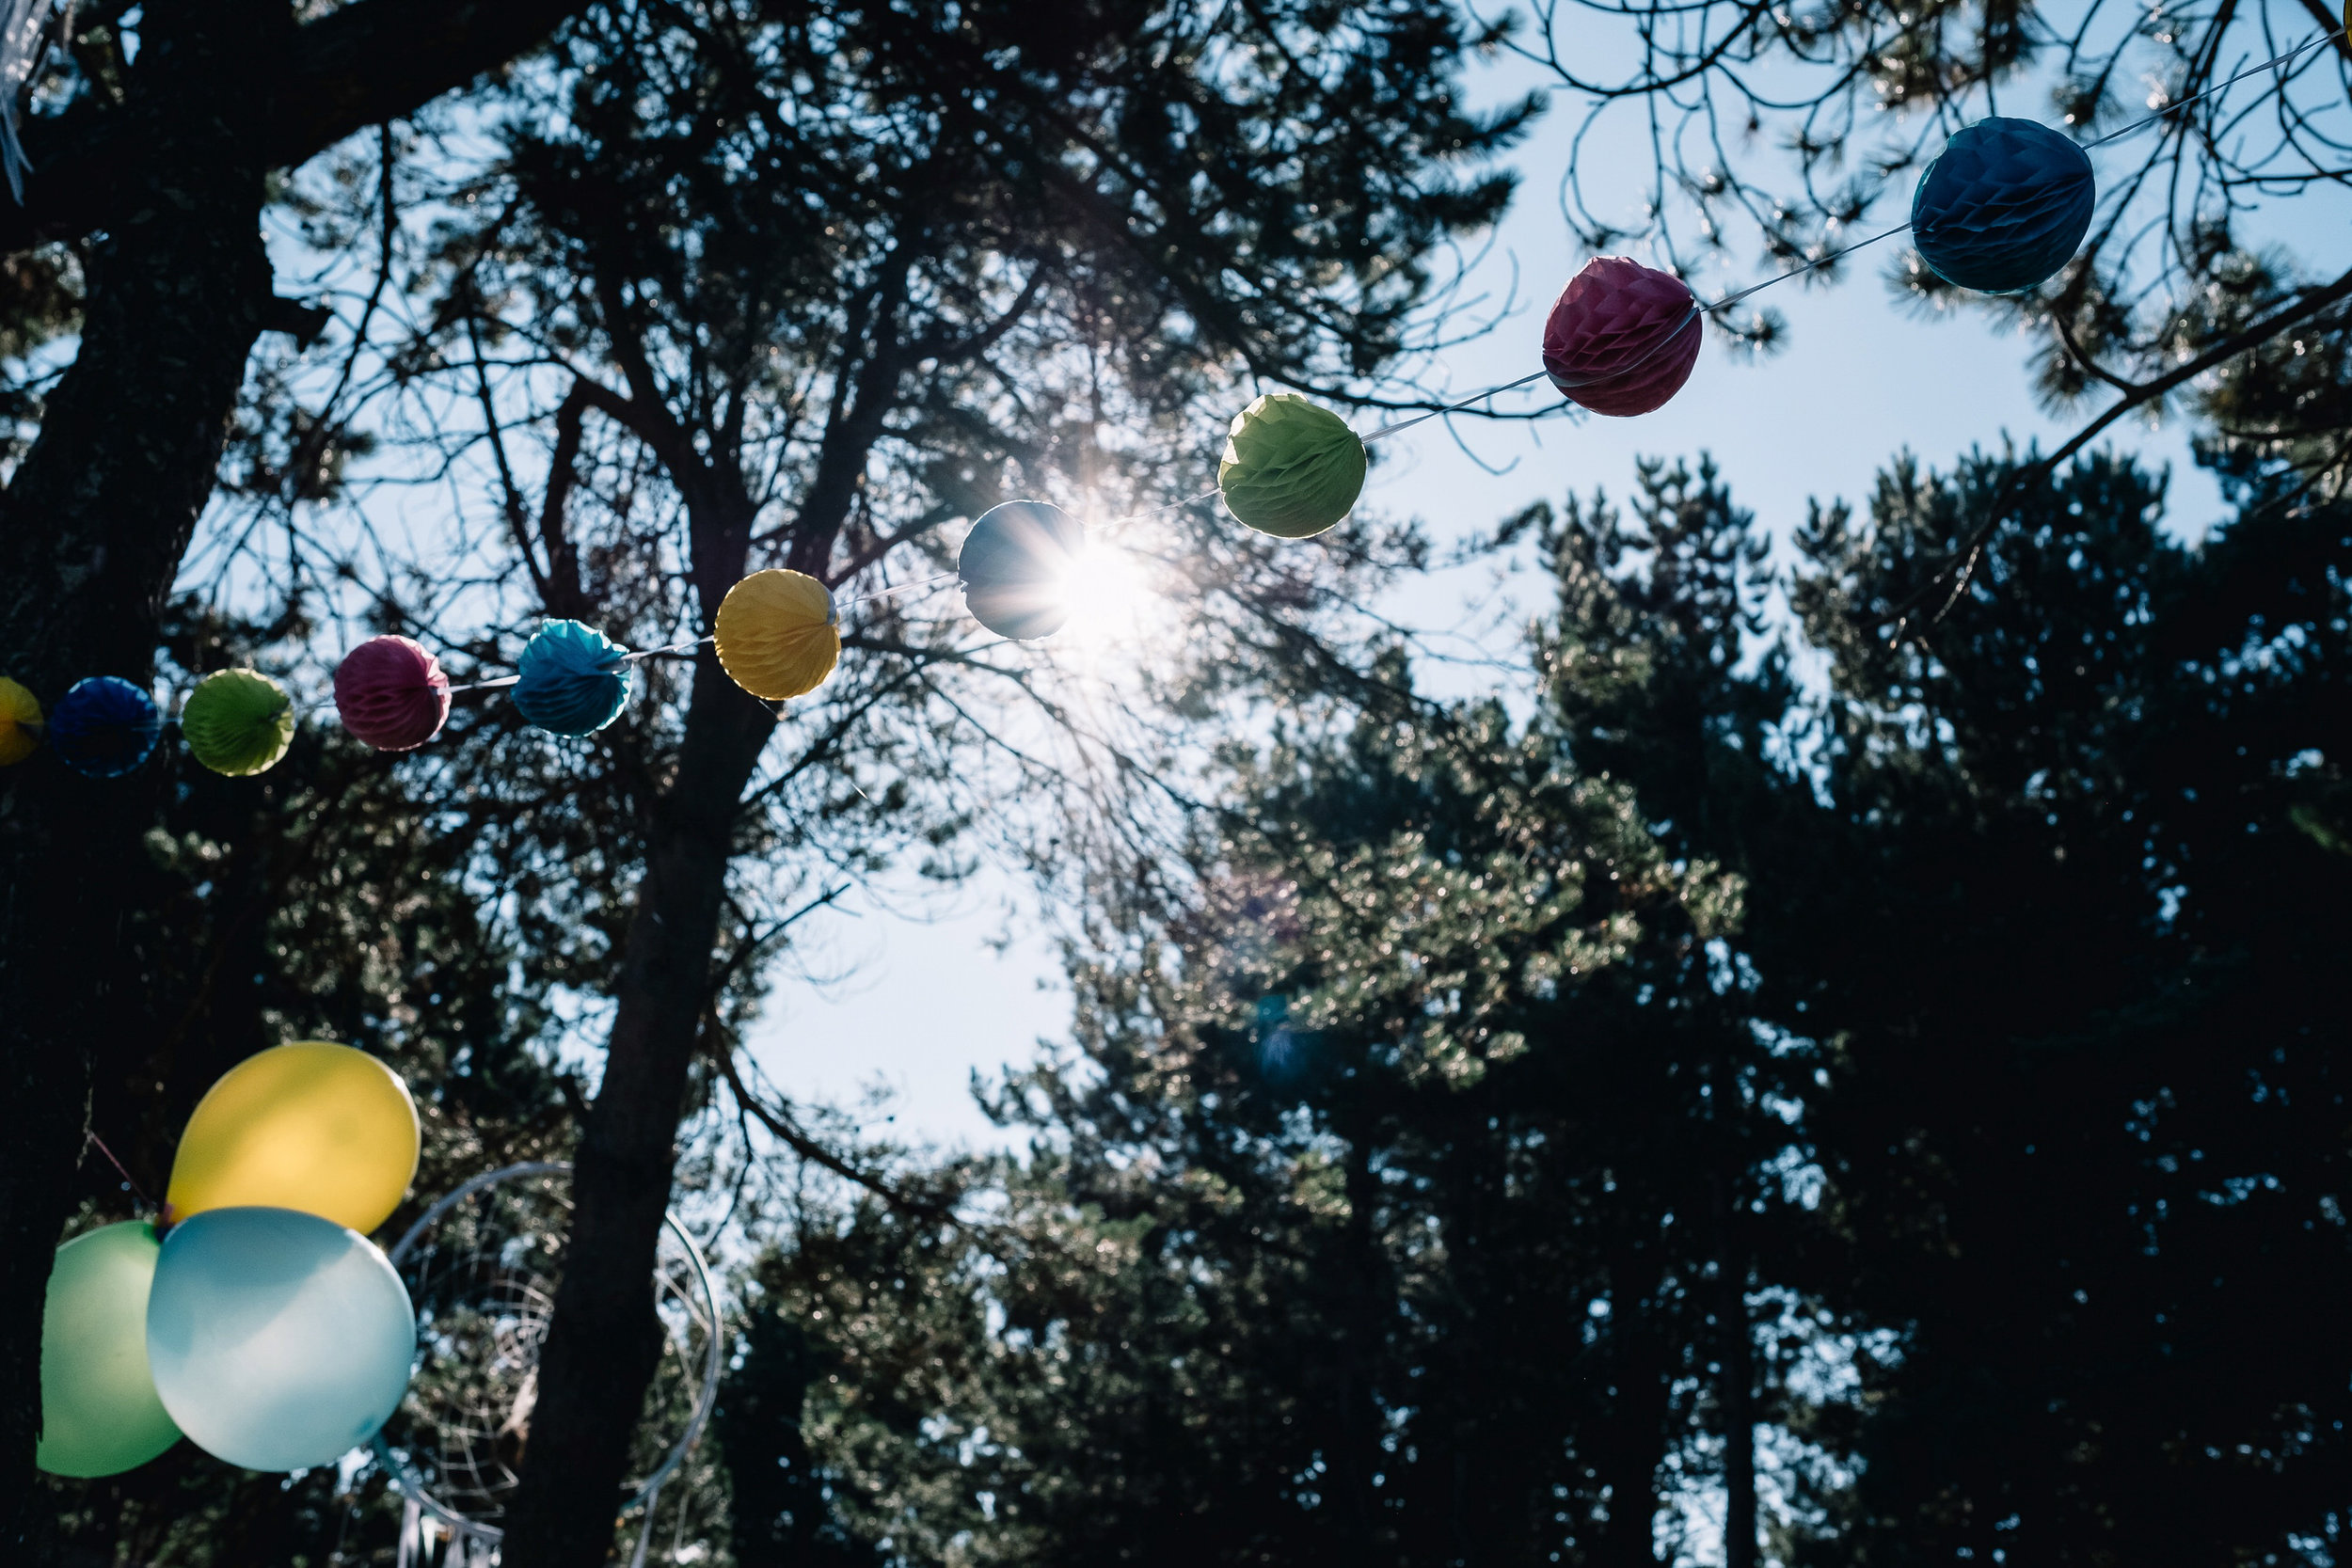 The forrest is decorated with ballons